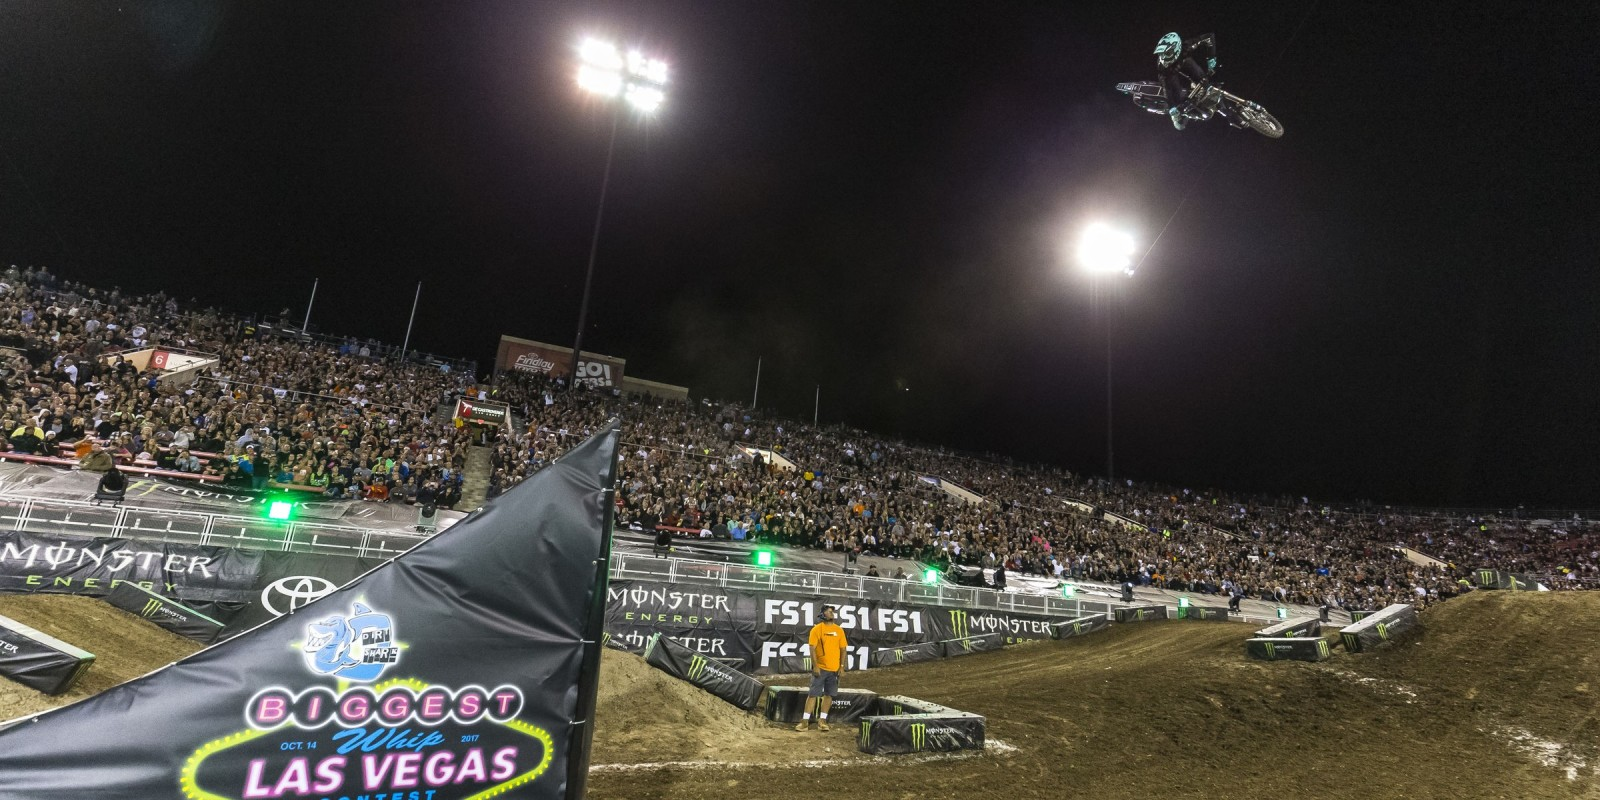 Tyler Bereman at Monster Energy Cup during the Dirt Shark Biggest Whip